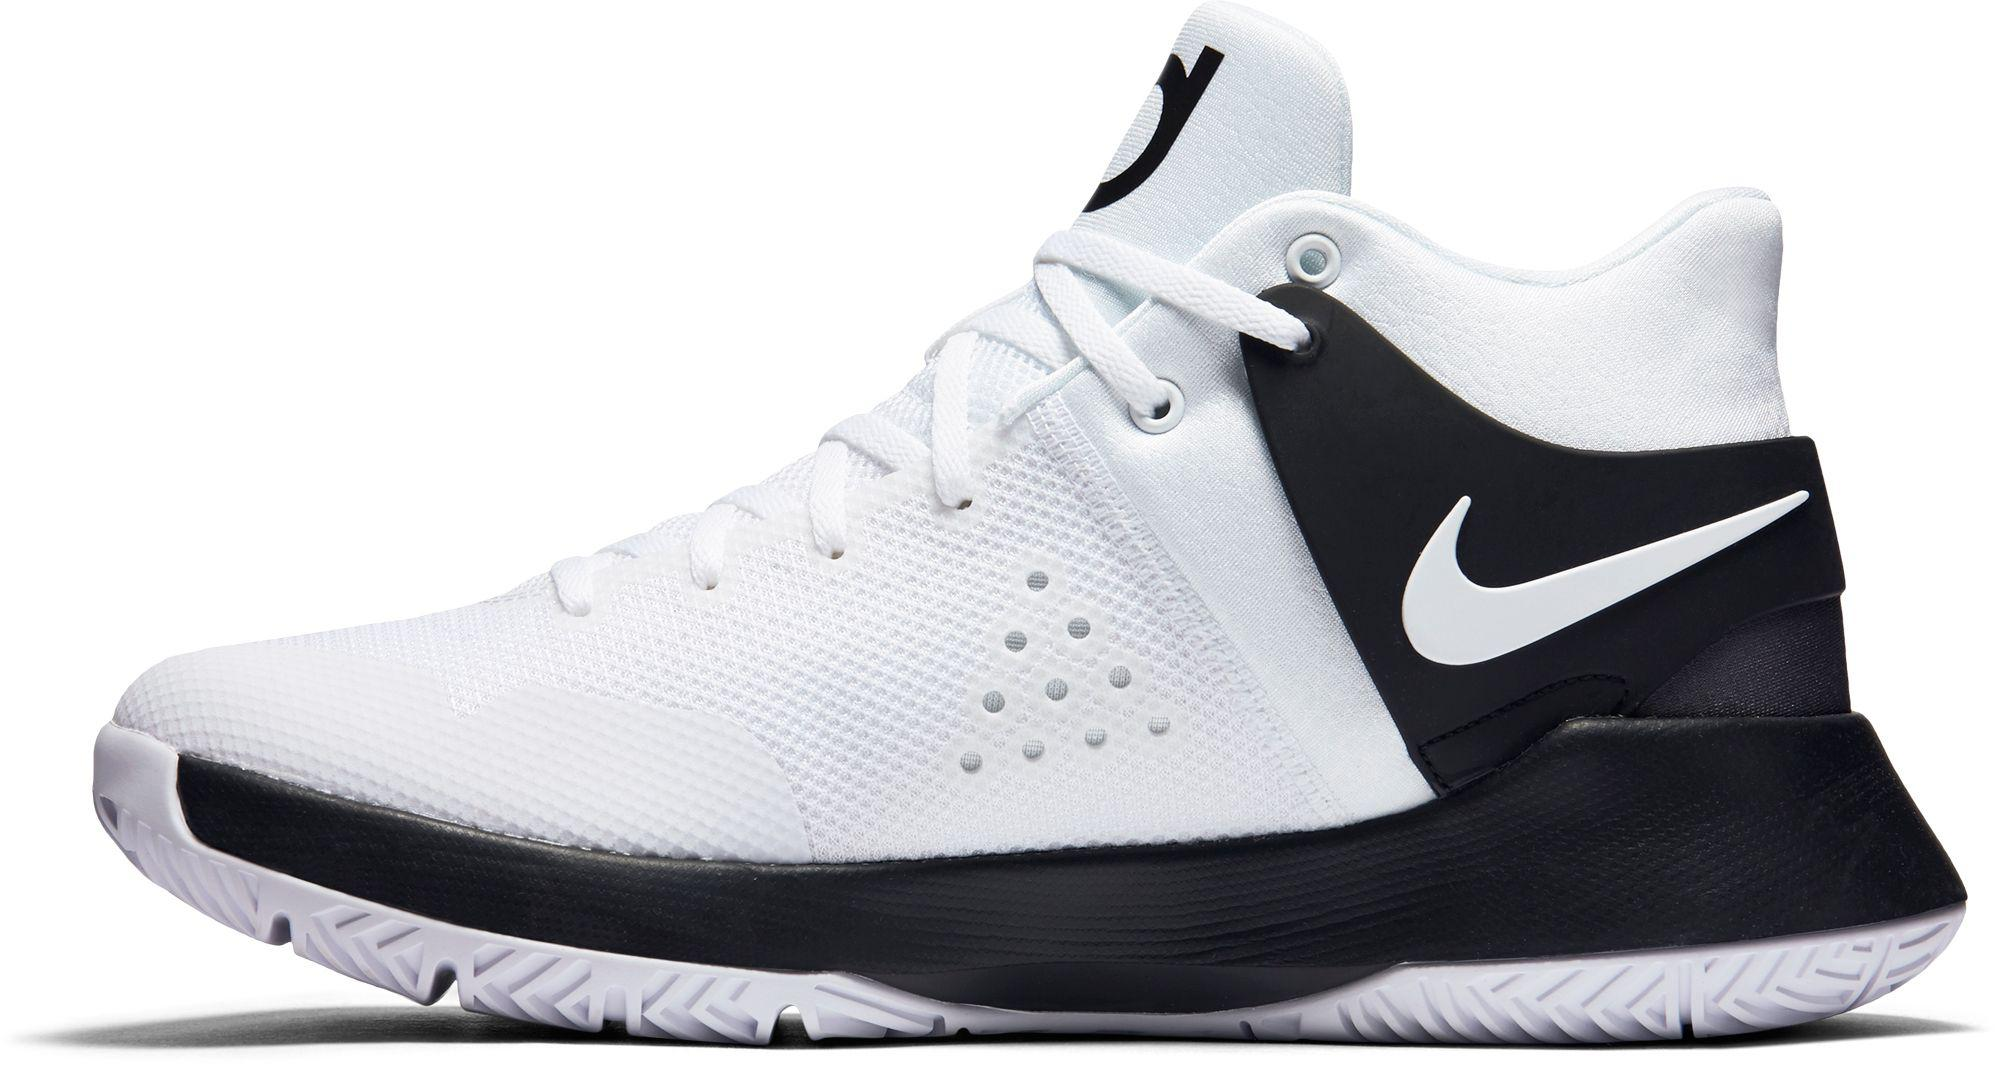 Lyst - Nike Kd Trey 5 Iv Tb Basketball Shoes in White for Men 752c12180